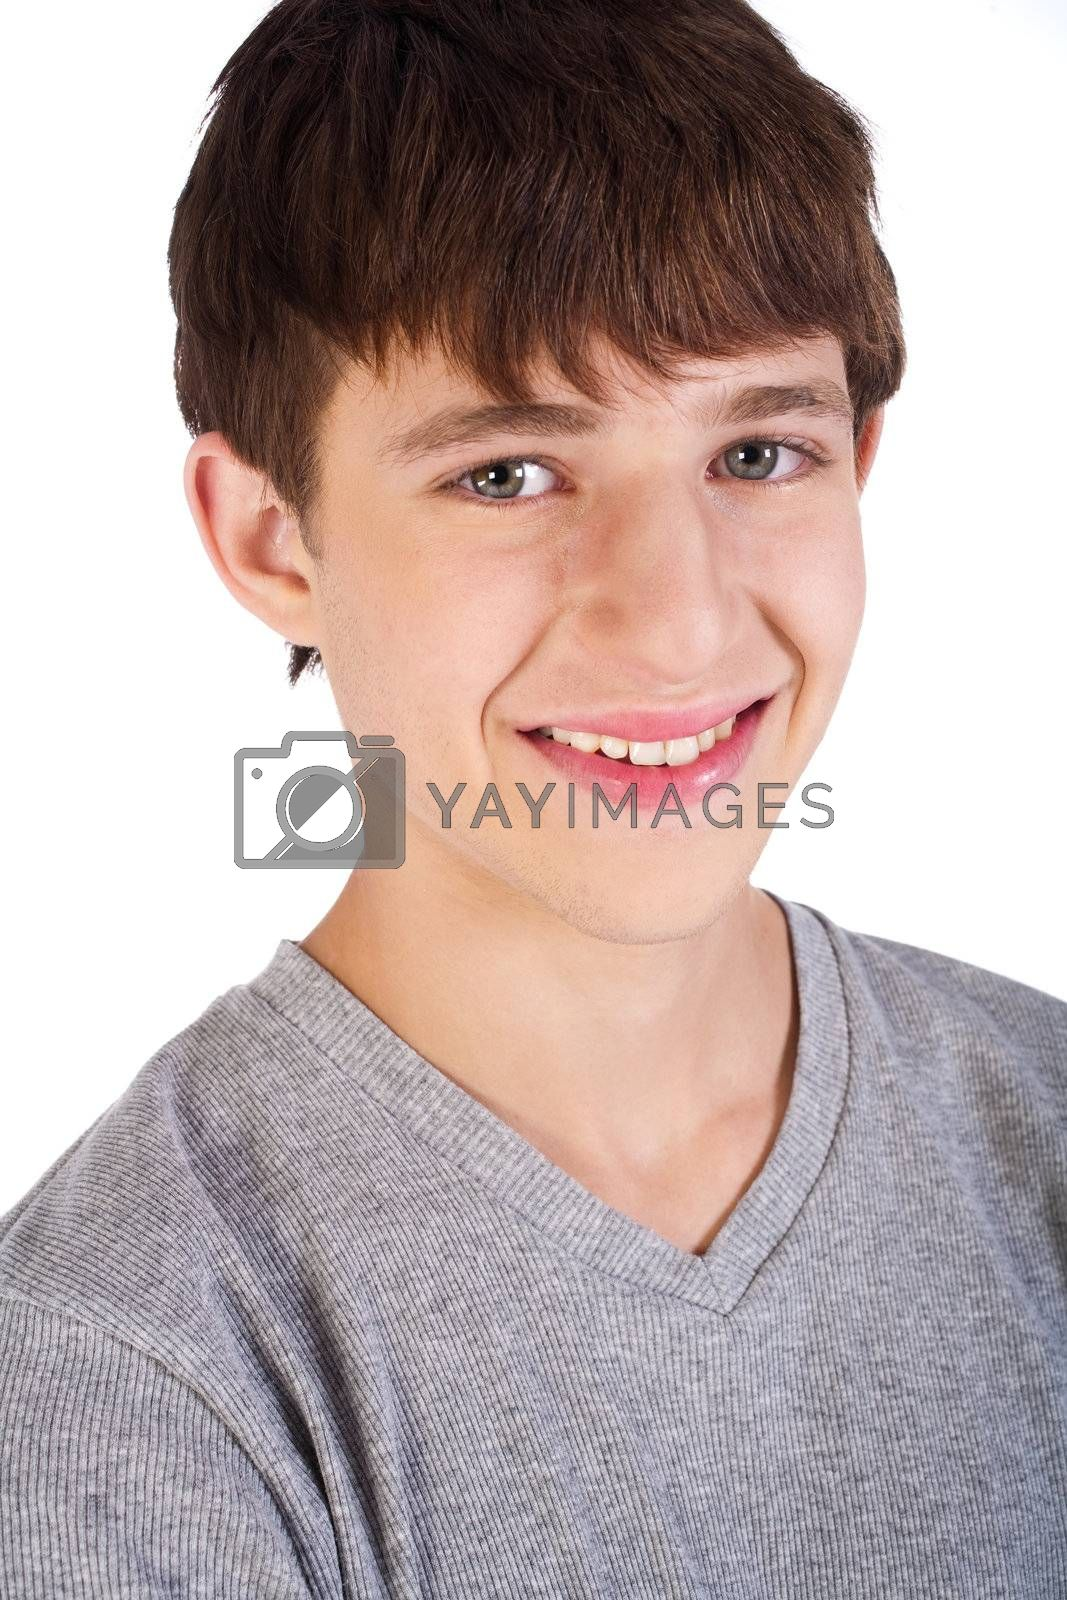 Close-up of hadnsome young boy smiling at camera.